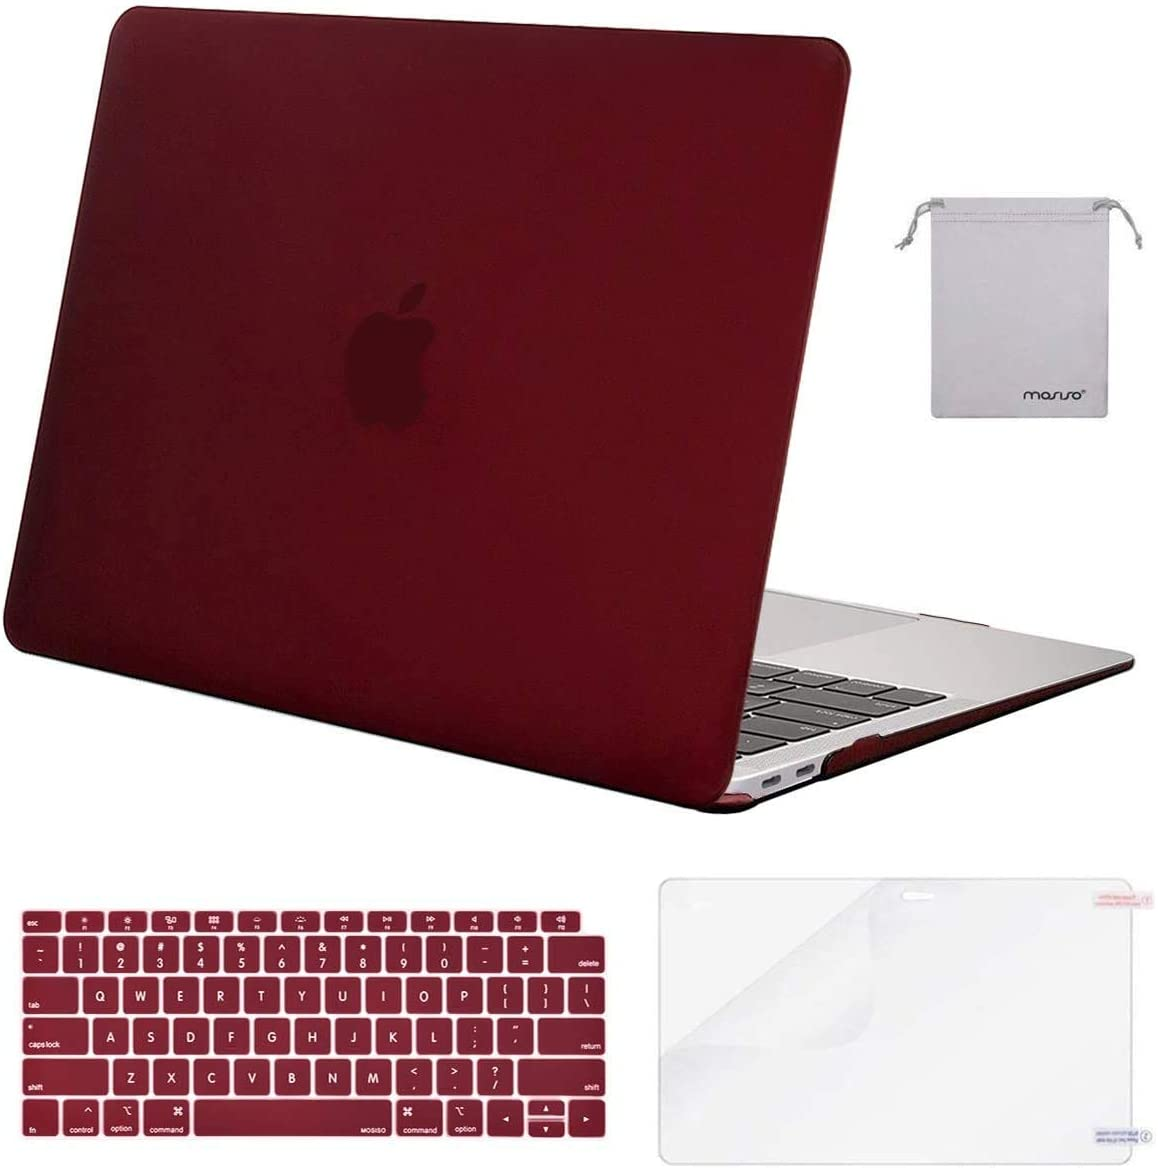 MOSISO MacBook Air 13 inch Case 2020 2019 2018 Release A2179 A1932 with Retina Display, Plastic Hard Shell&Keyboard Cover&Screen Protector&Storage Bag Compatible with MacBook Air 13, Marsala Red